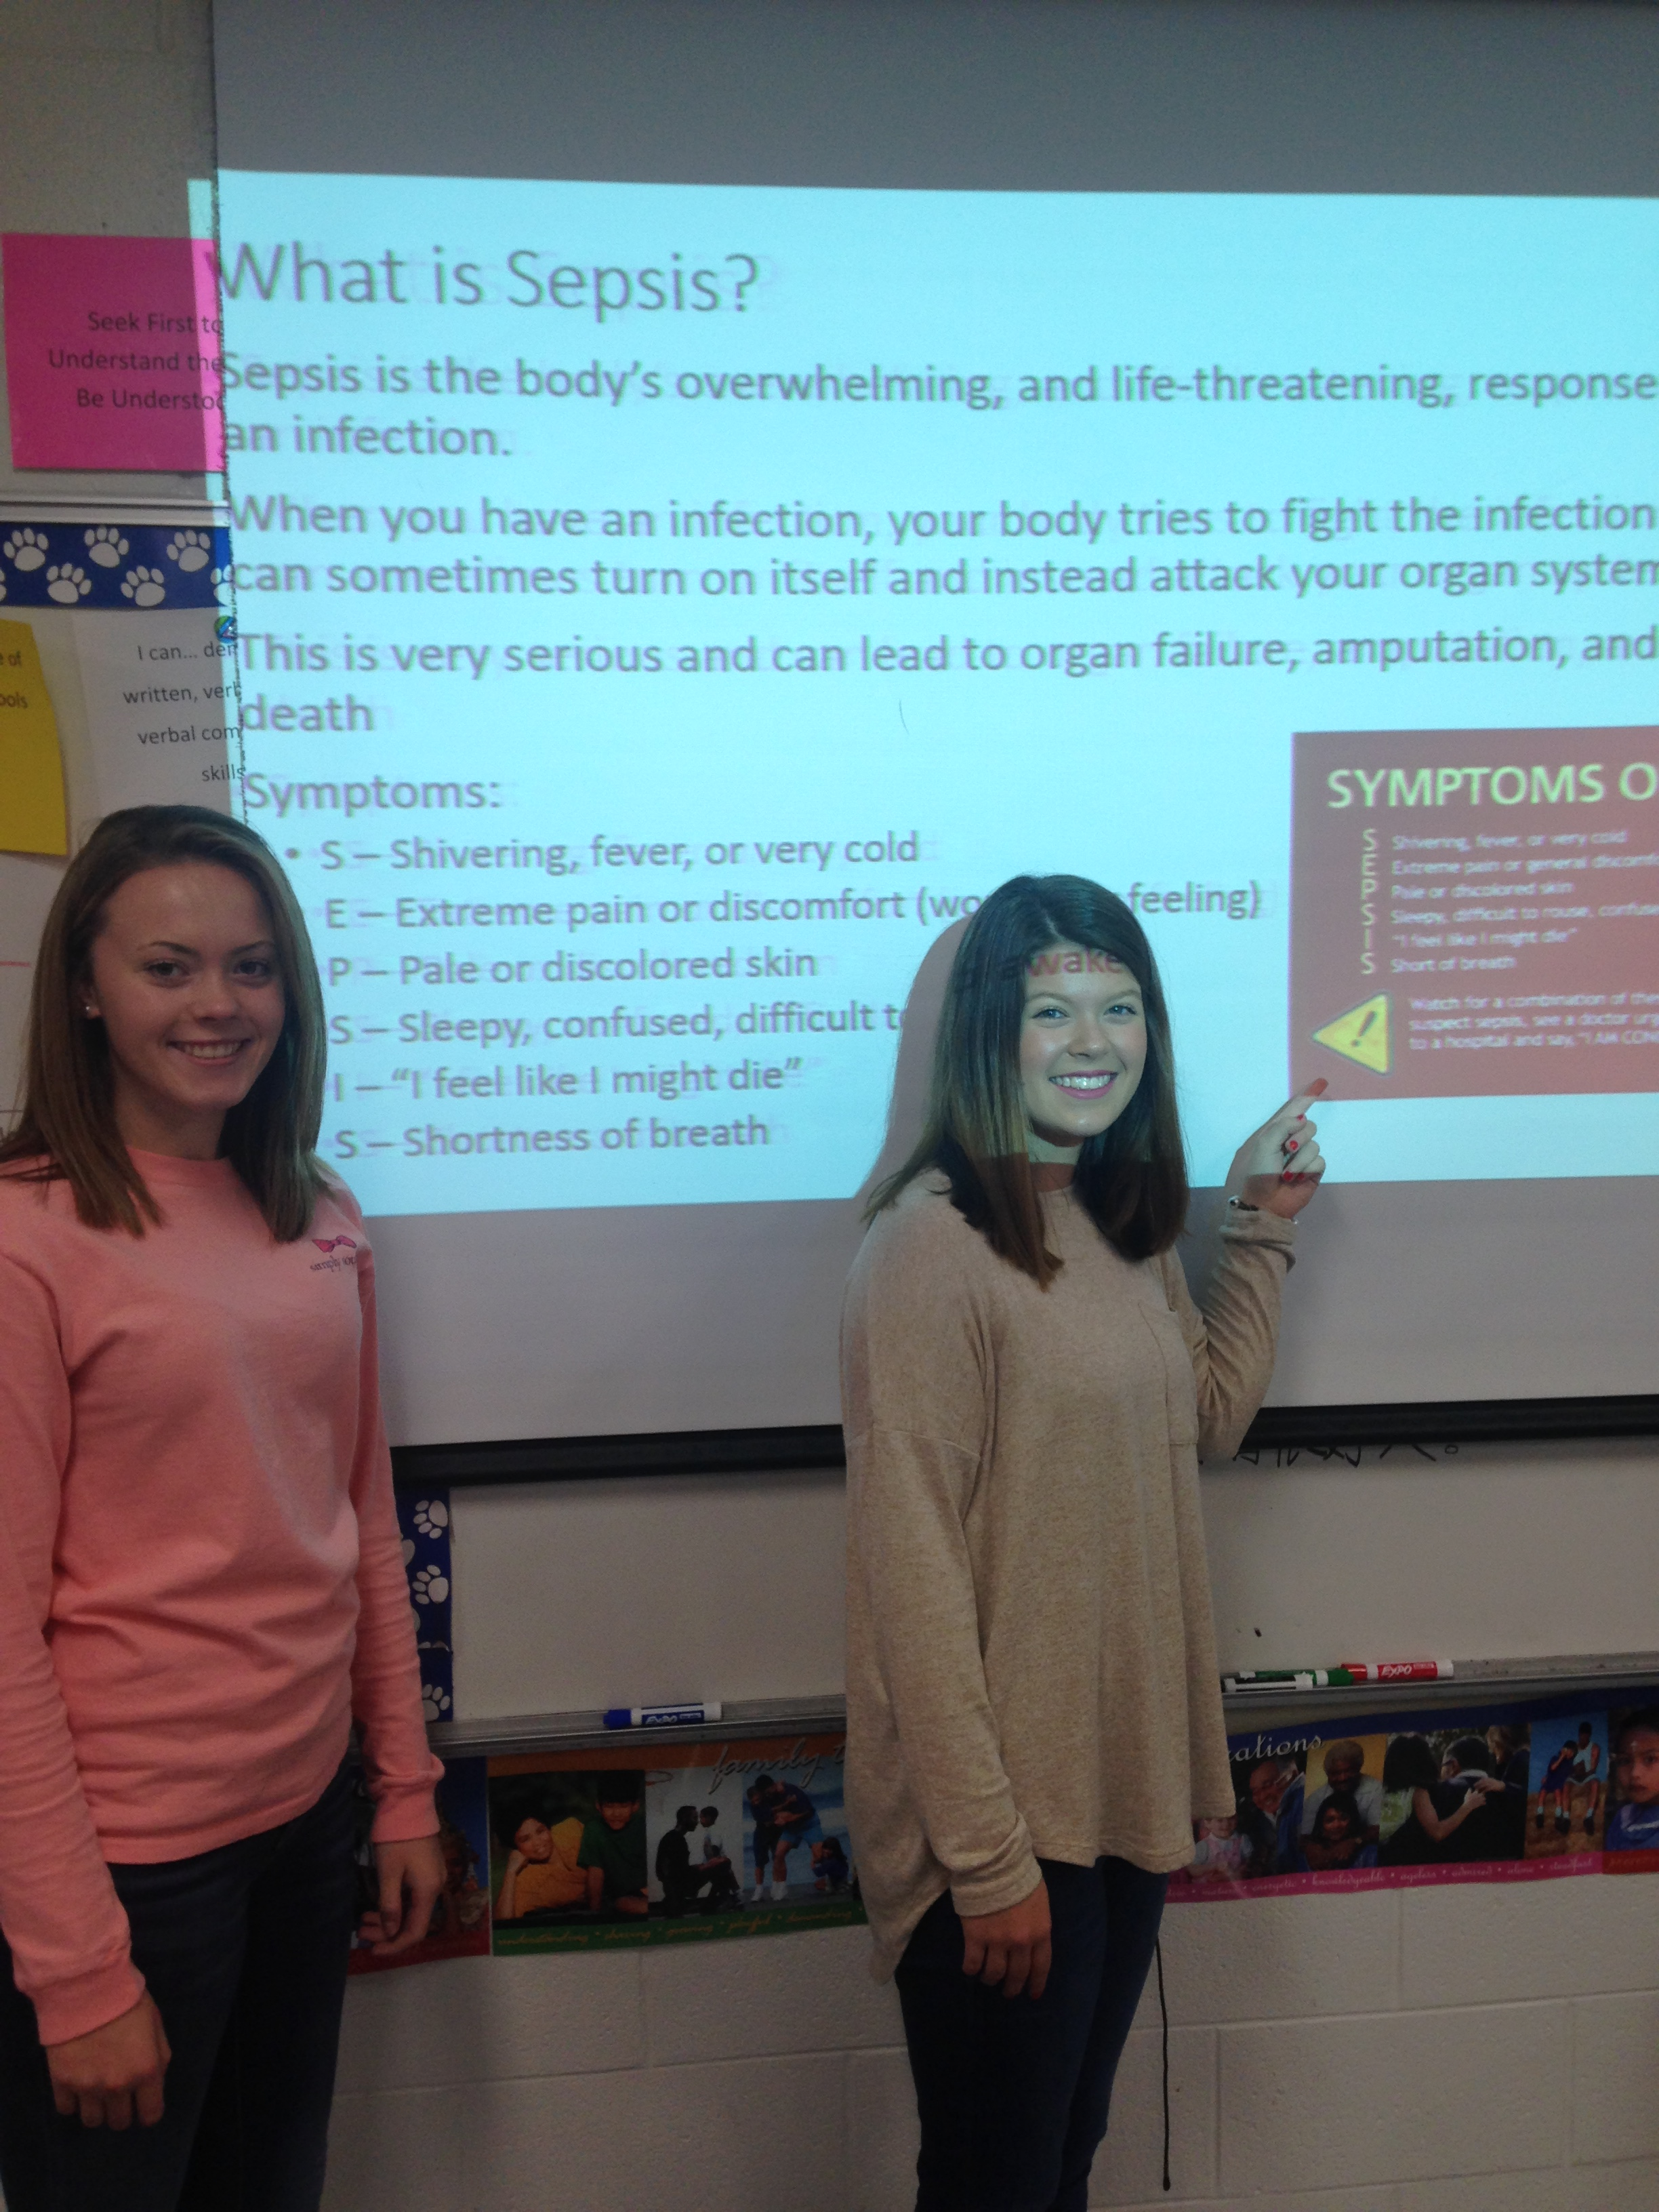 FCCLA officers educate classmates concerning Sepsis